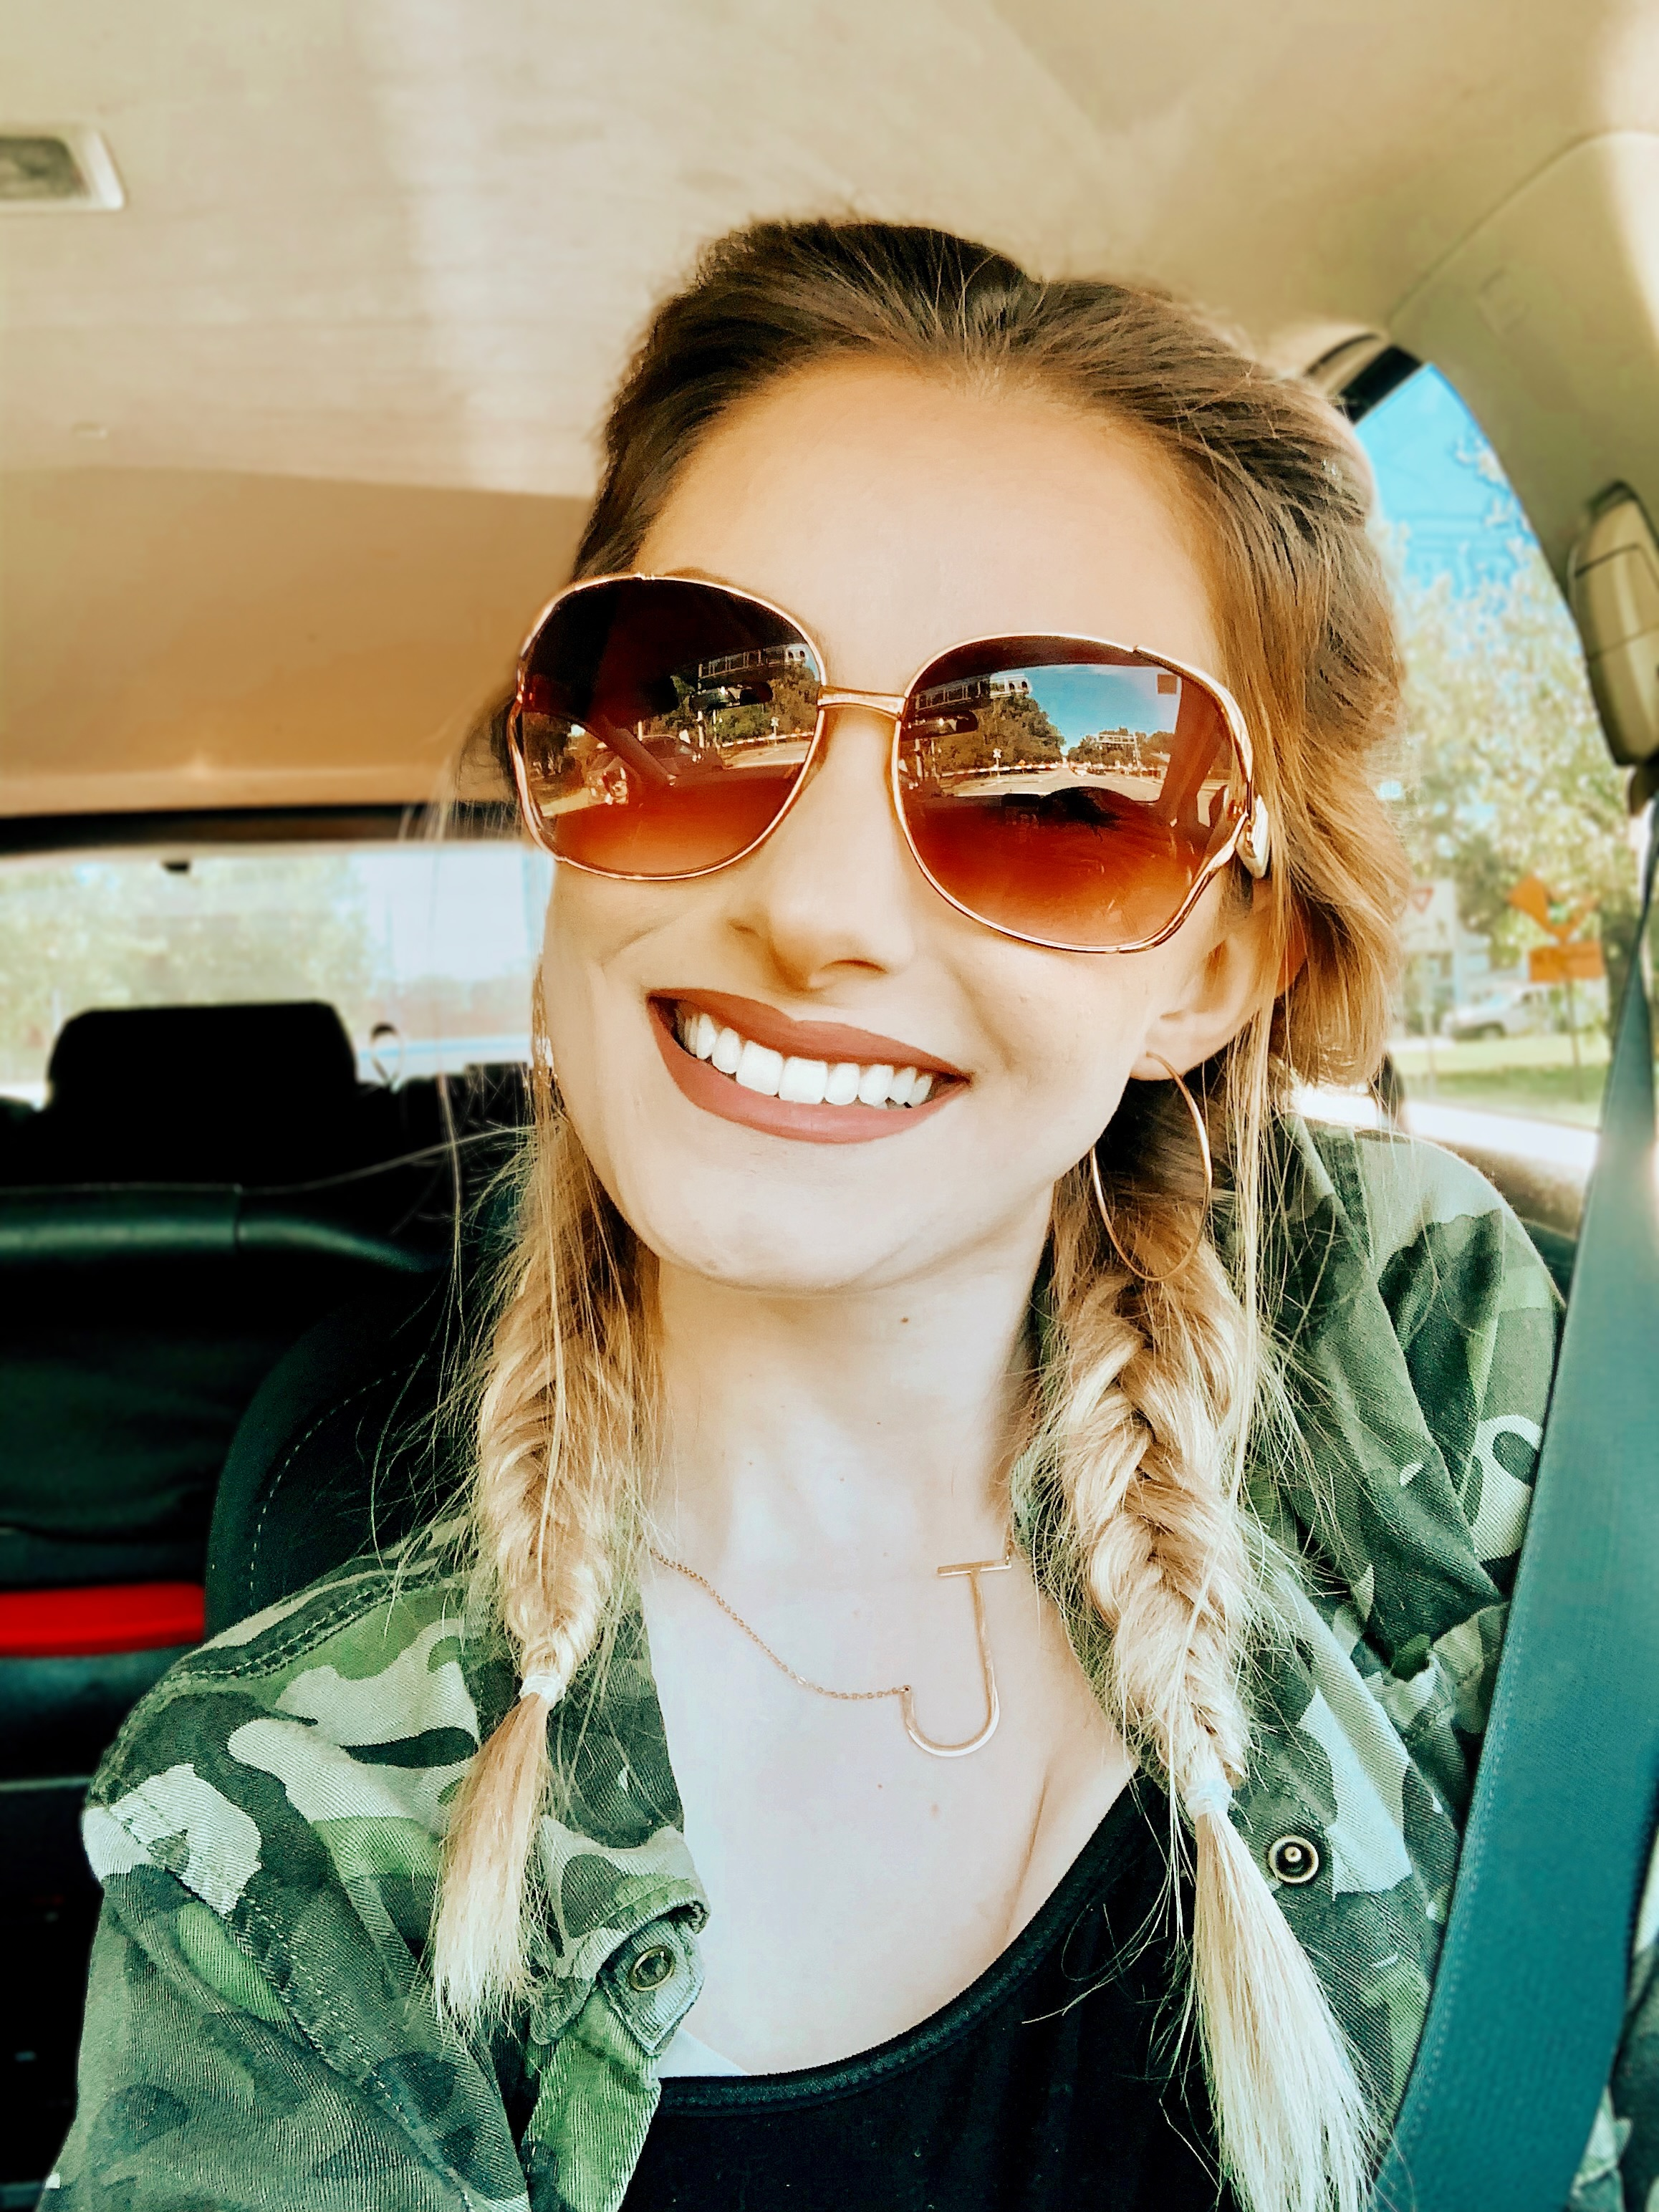 Fishtail pigtail braids and makeup inspiration | North Carolina Fashion & lifestyle blogger, Jessica Linn, sharing an Instagram post roundup on Linn Style.